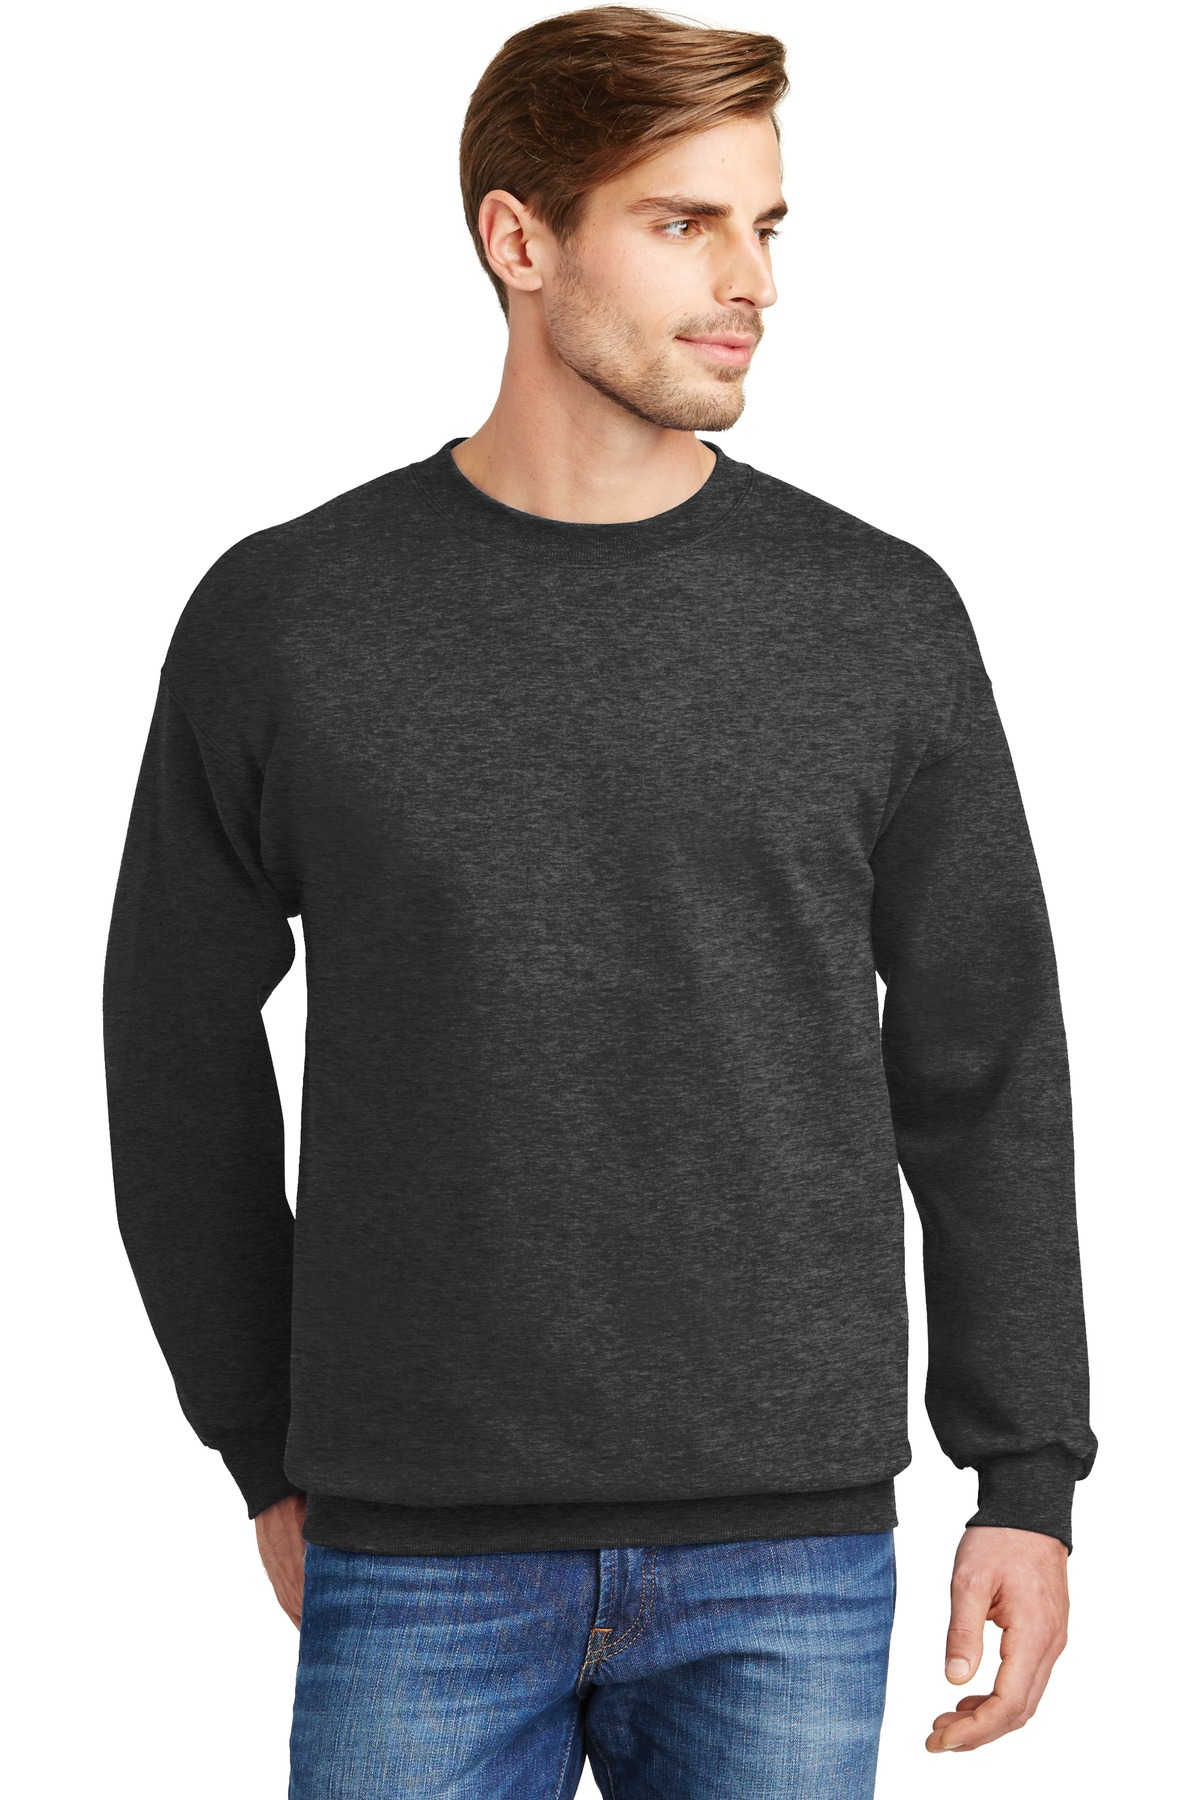 Hanes ®  Ultimate Cotton ®  - Crewneck Sweatshirt.  F260 - Charcoal Heather**